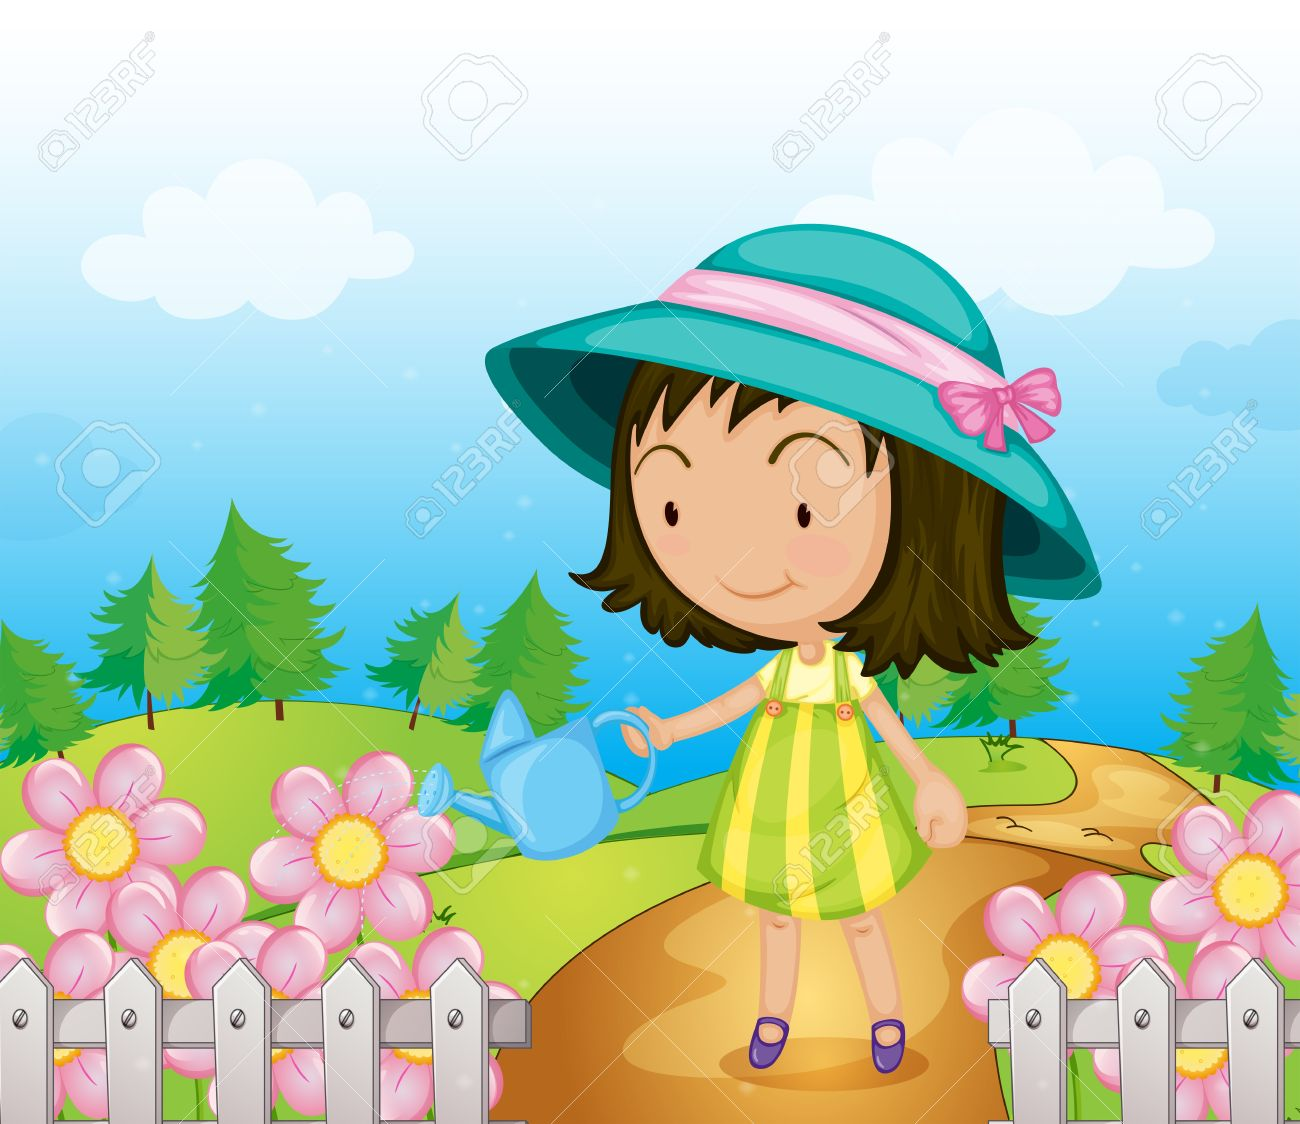 Illustration of a girl watering the flowers Stock Vector - 17895612